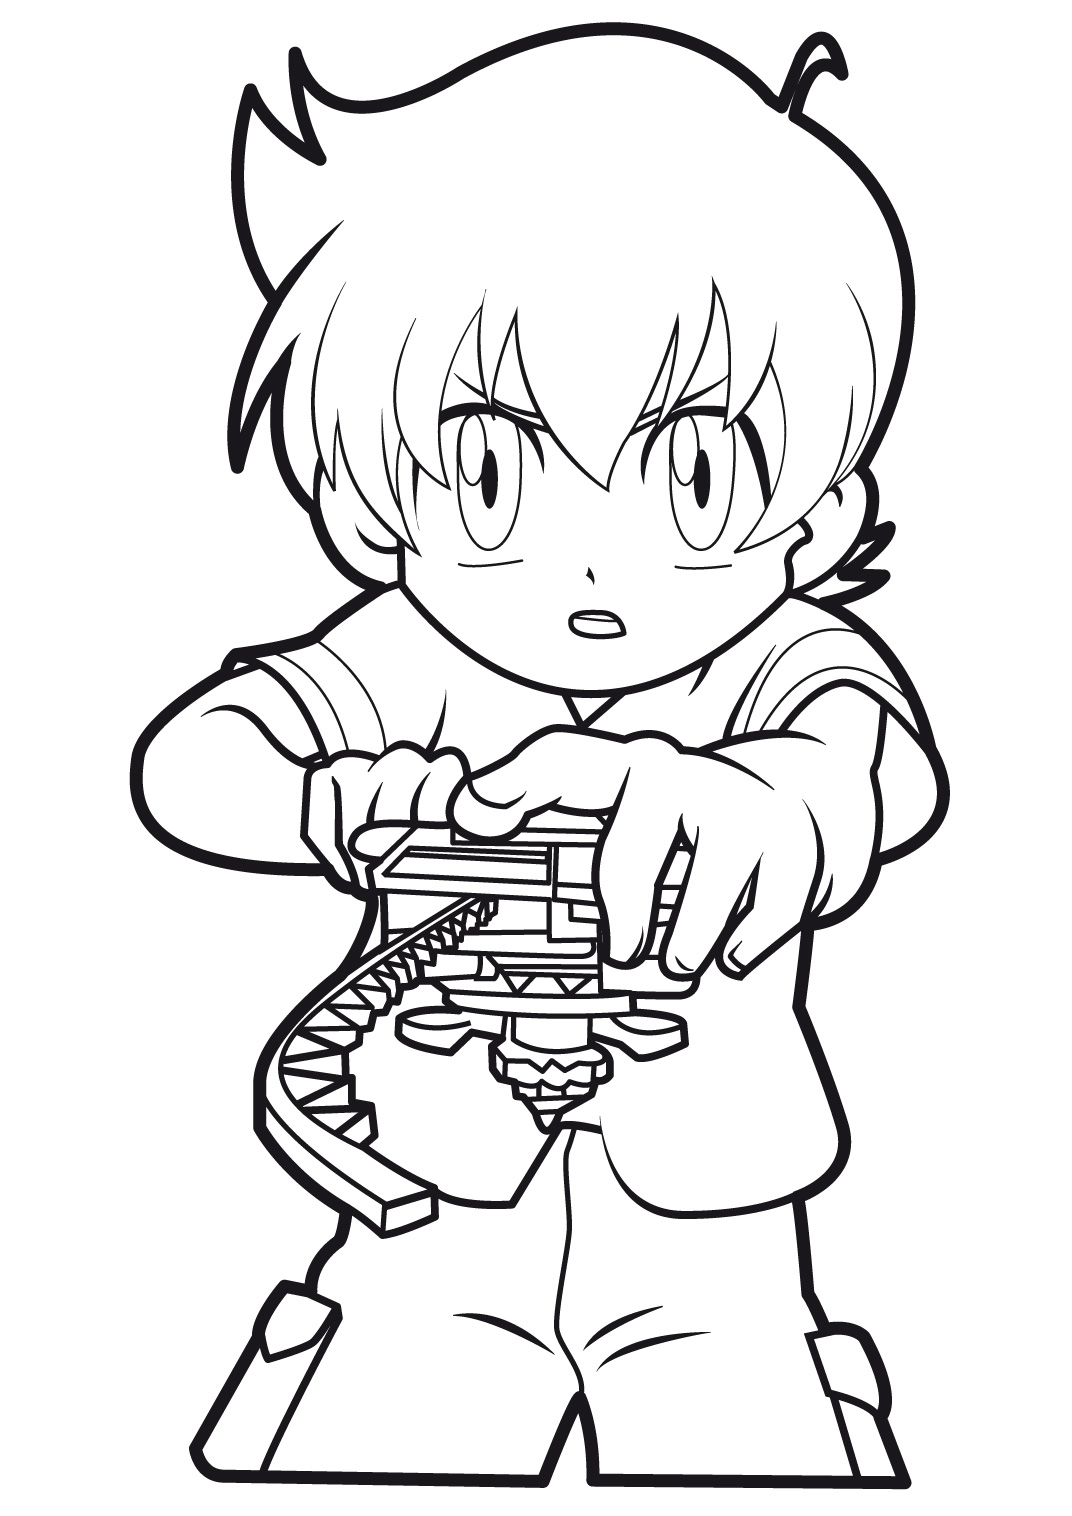 Hiro Granger coloring page